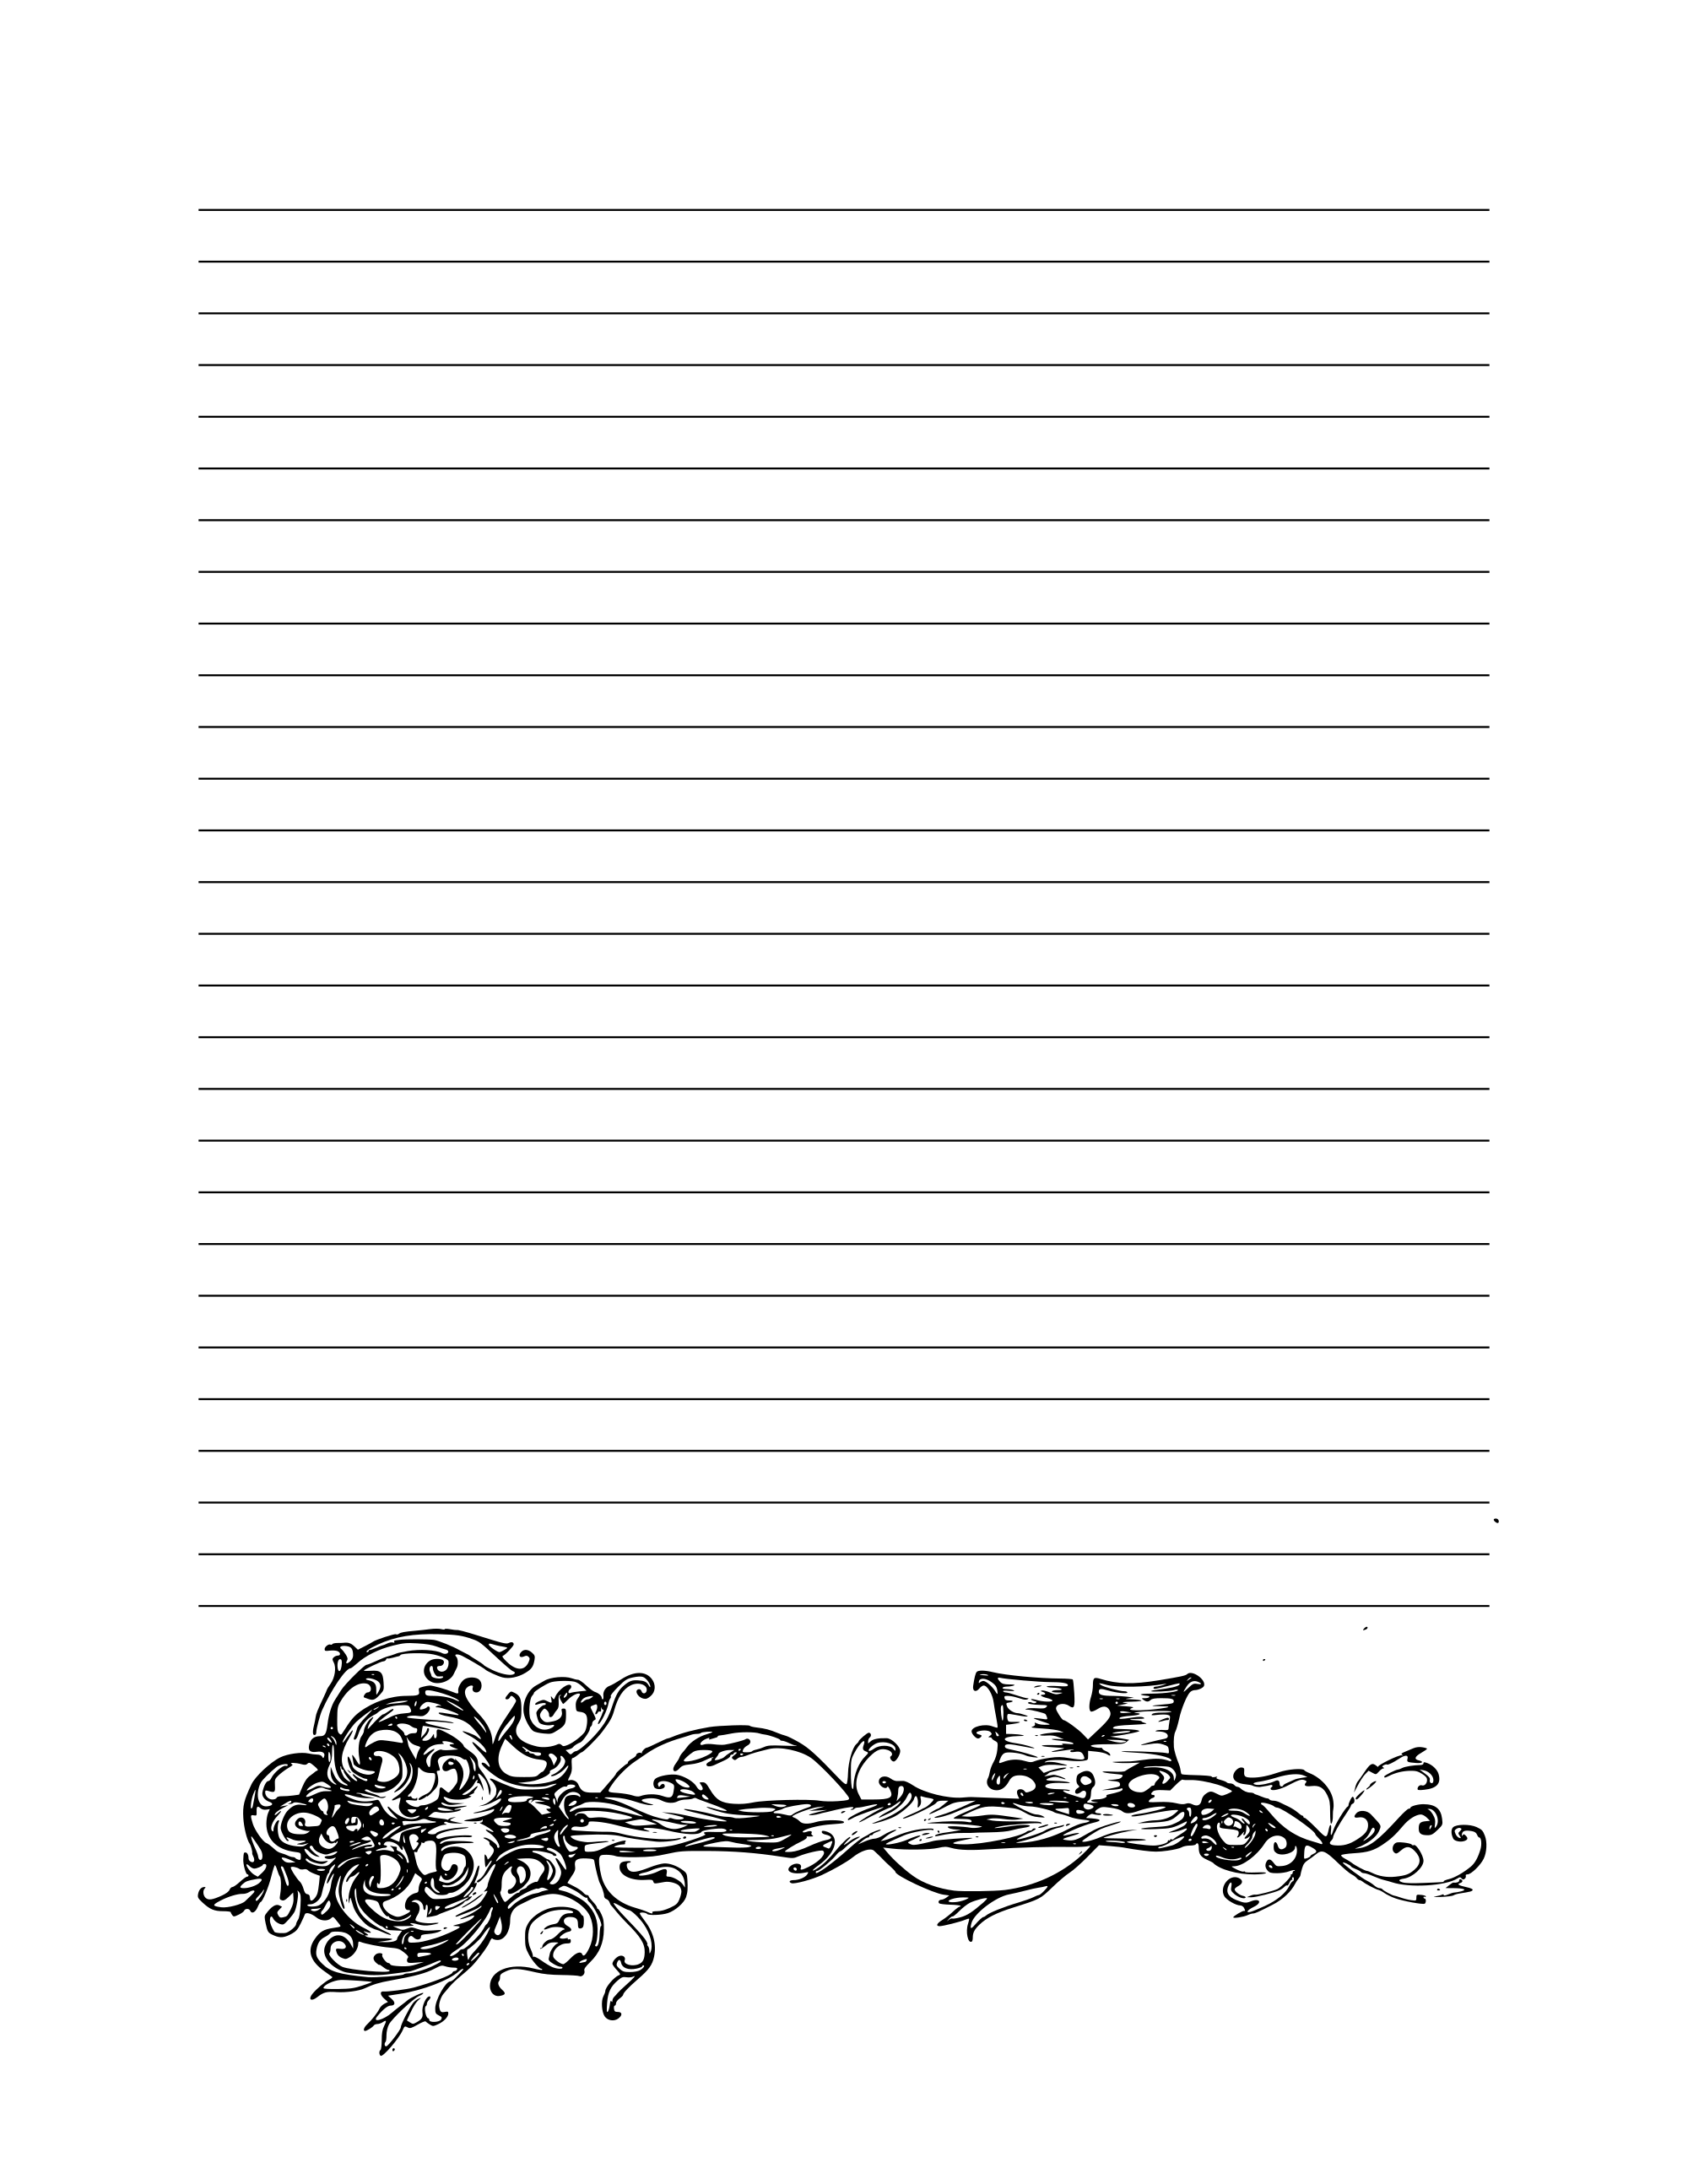 Book Of Shadows Bos Lined Page Printable Book Of Shadows Halloween Writing Letter Writing Paper